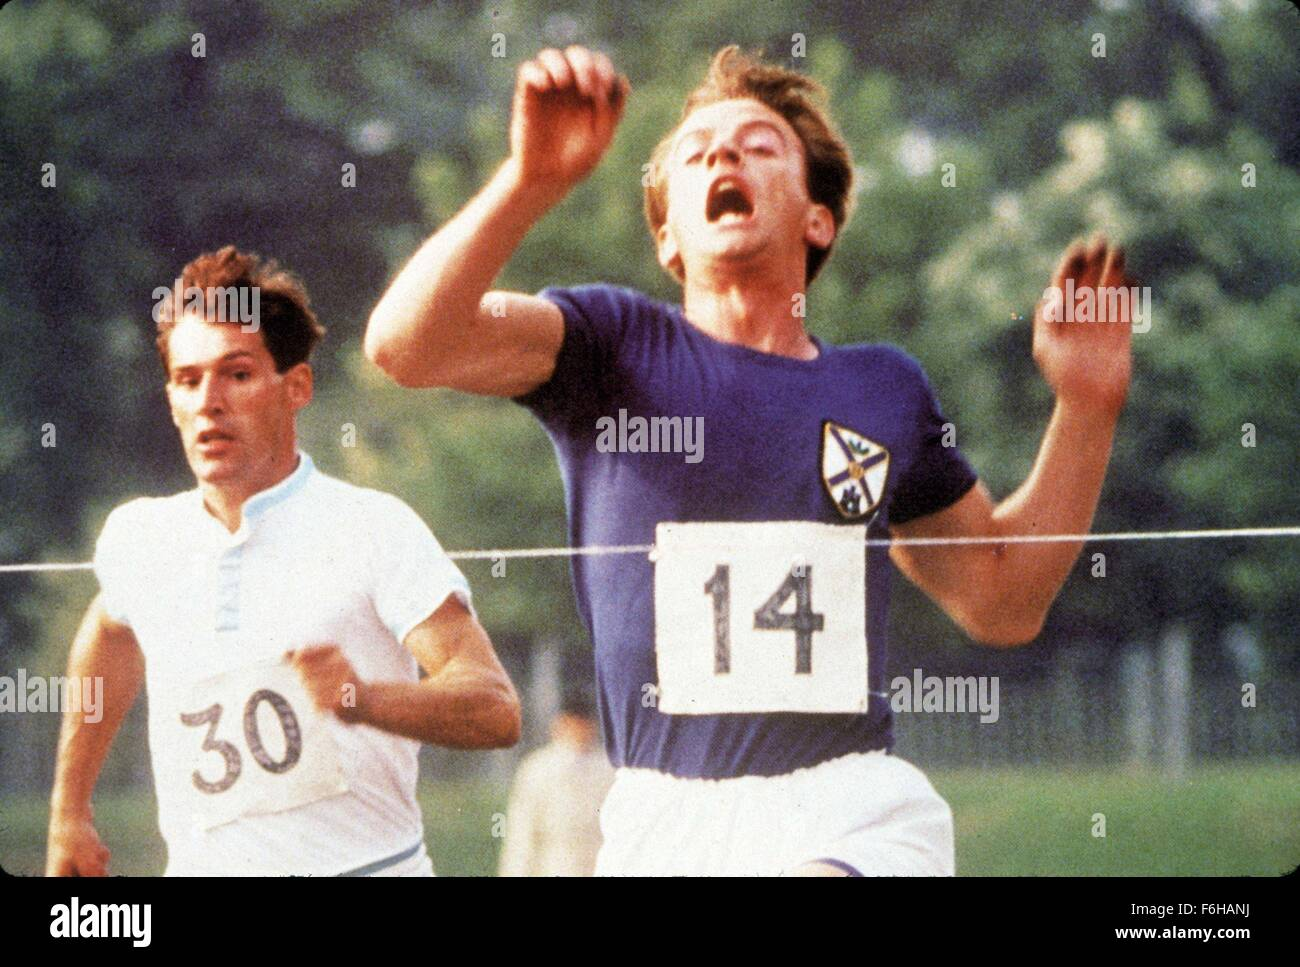 Chariots Of Fire Movie Stock Photos & Chariots Of Fire Movie